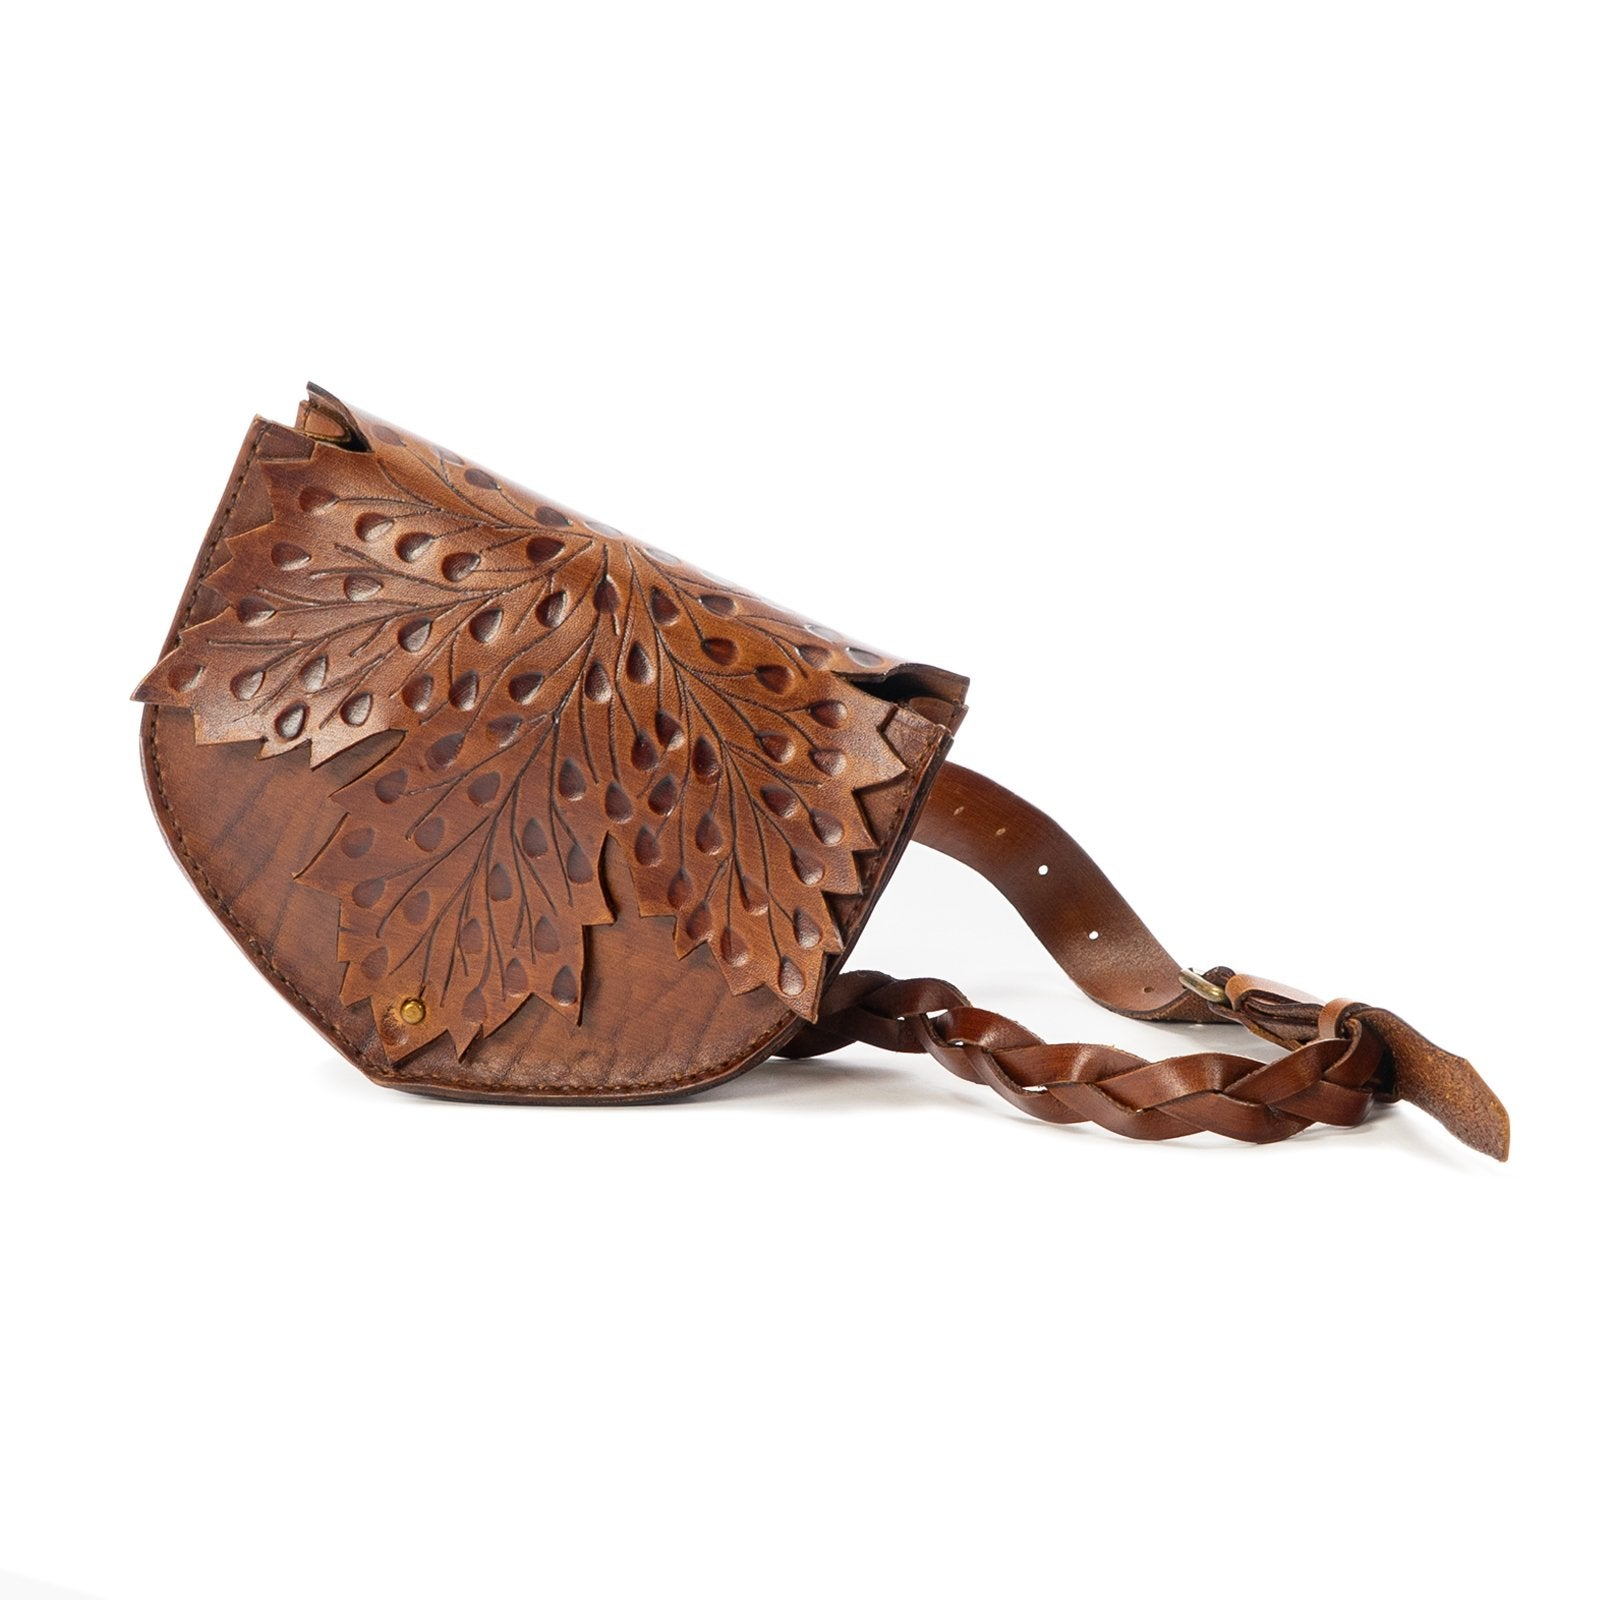 Derifix Royal Women's Handmade Leather Bag